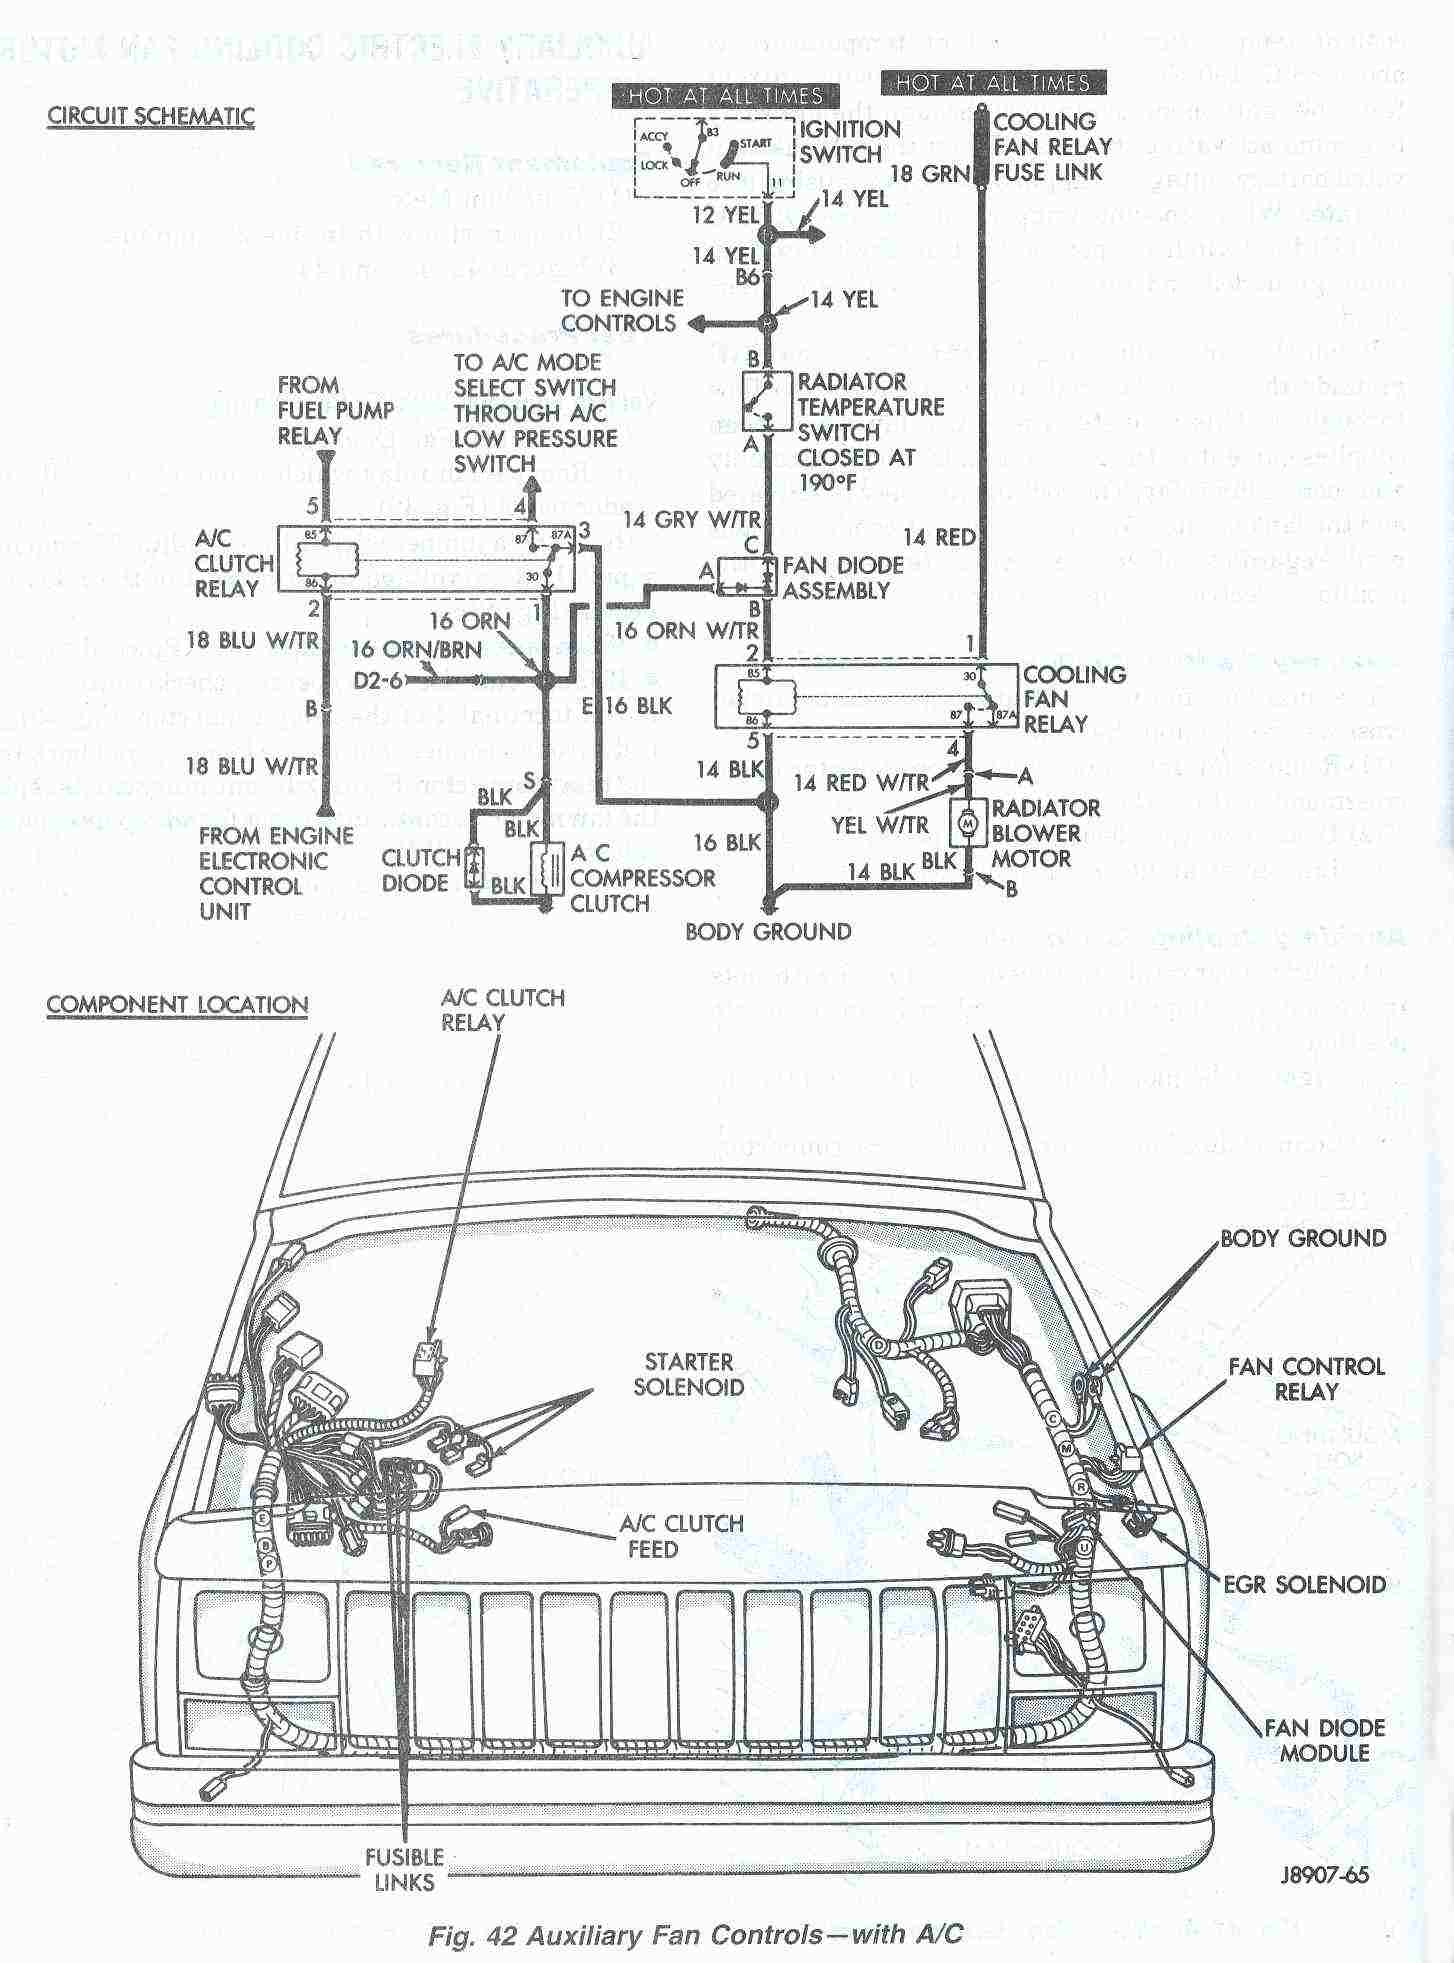 1998 jeep cherokee light diagram daily update wiring diagram 1996 Jeep Grand Cherokee Relay Diagram